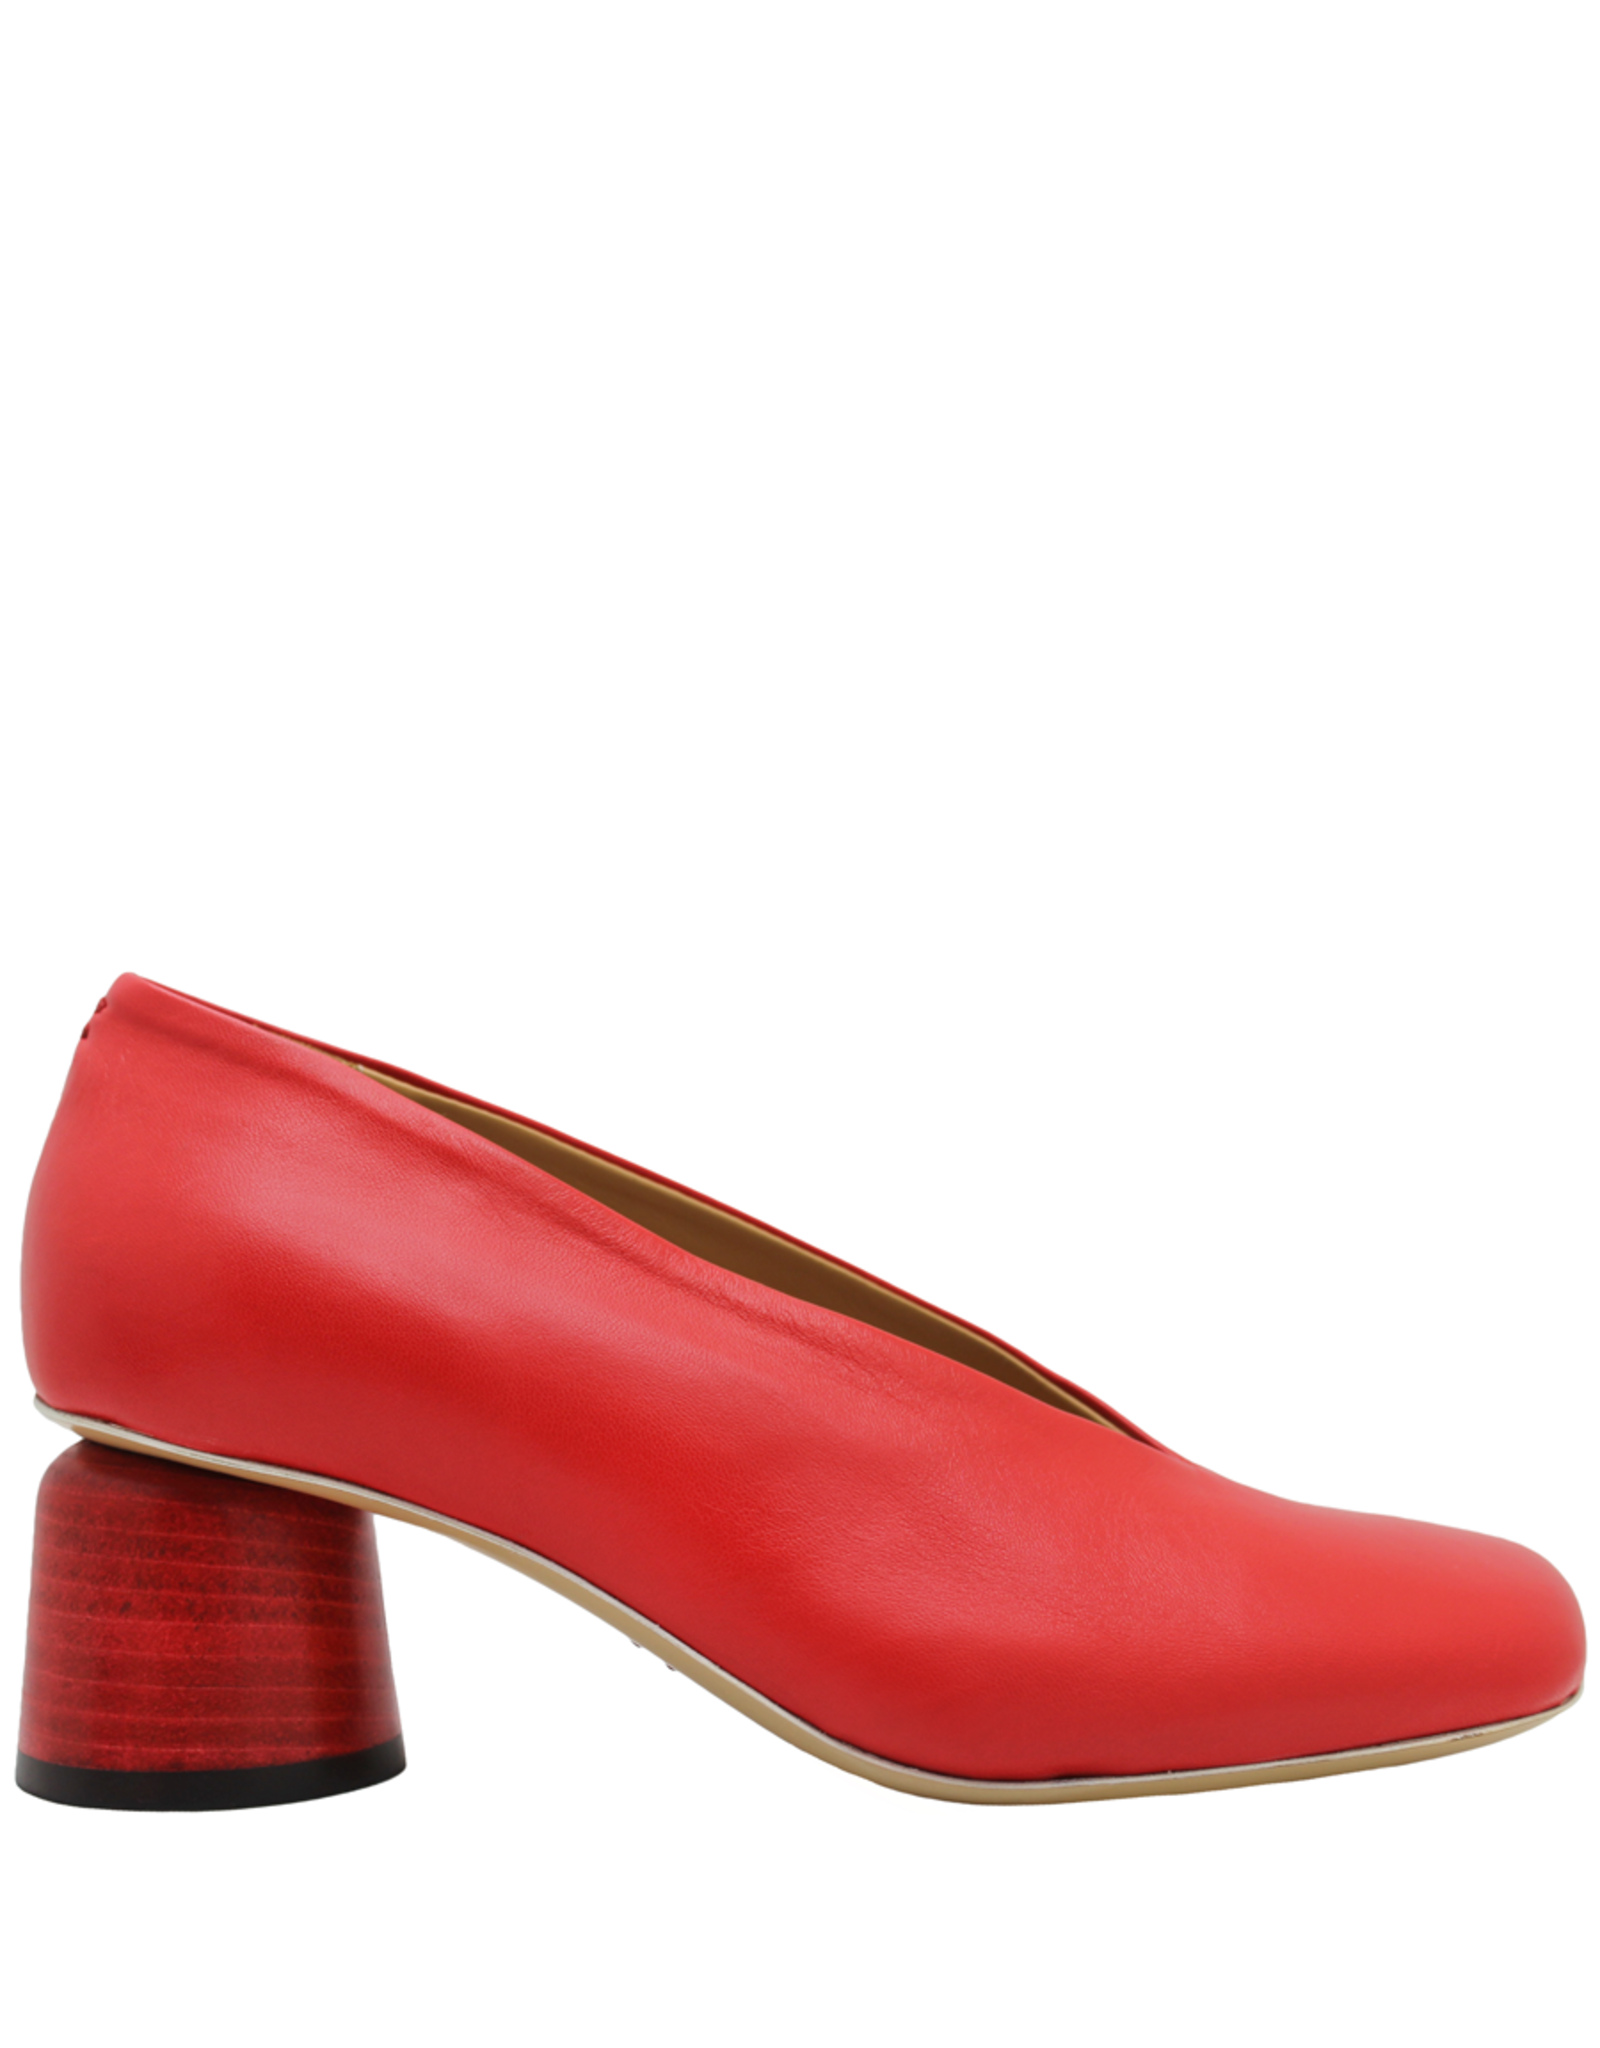 Halmanera Halmanera- Red Square Toe Pump-2037